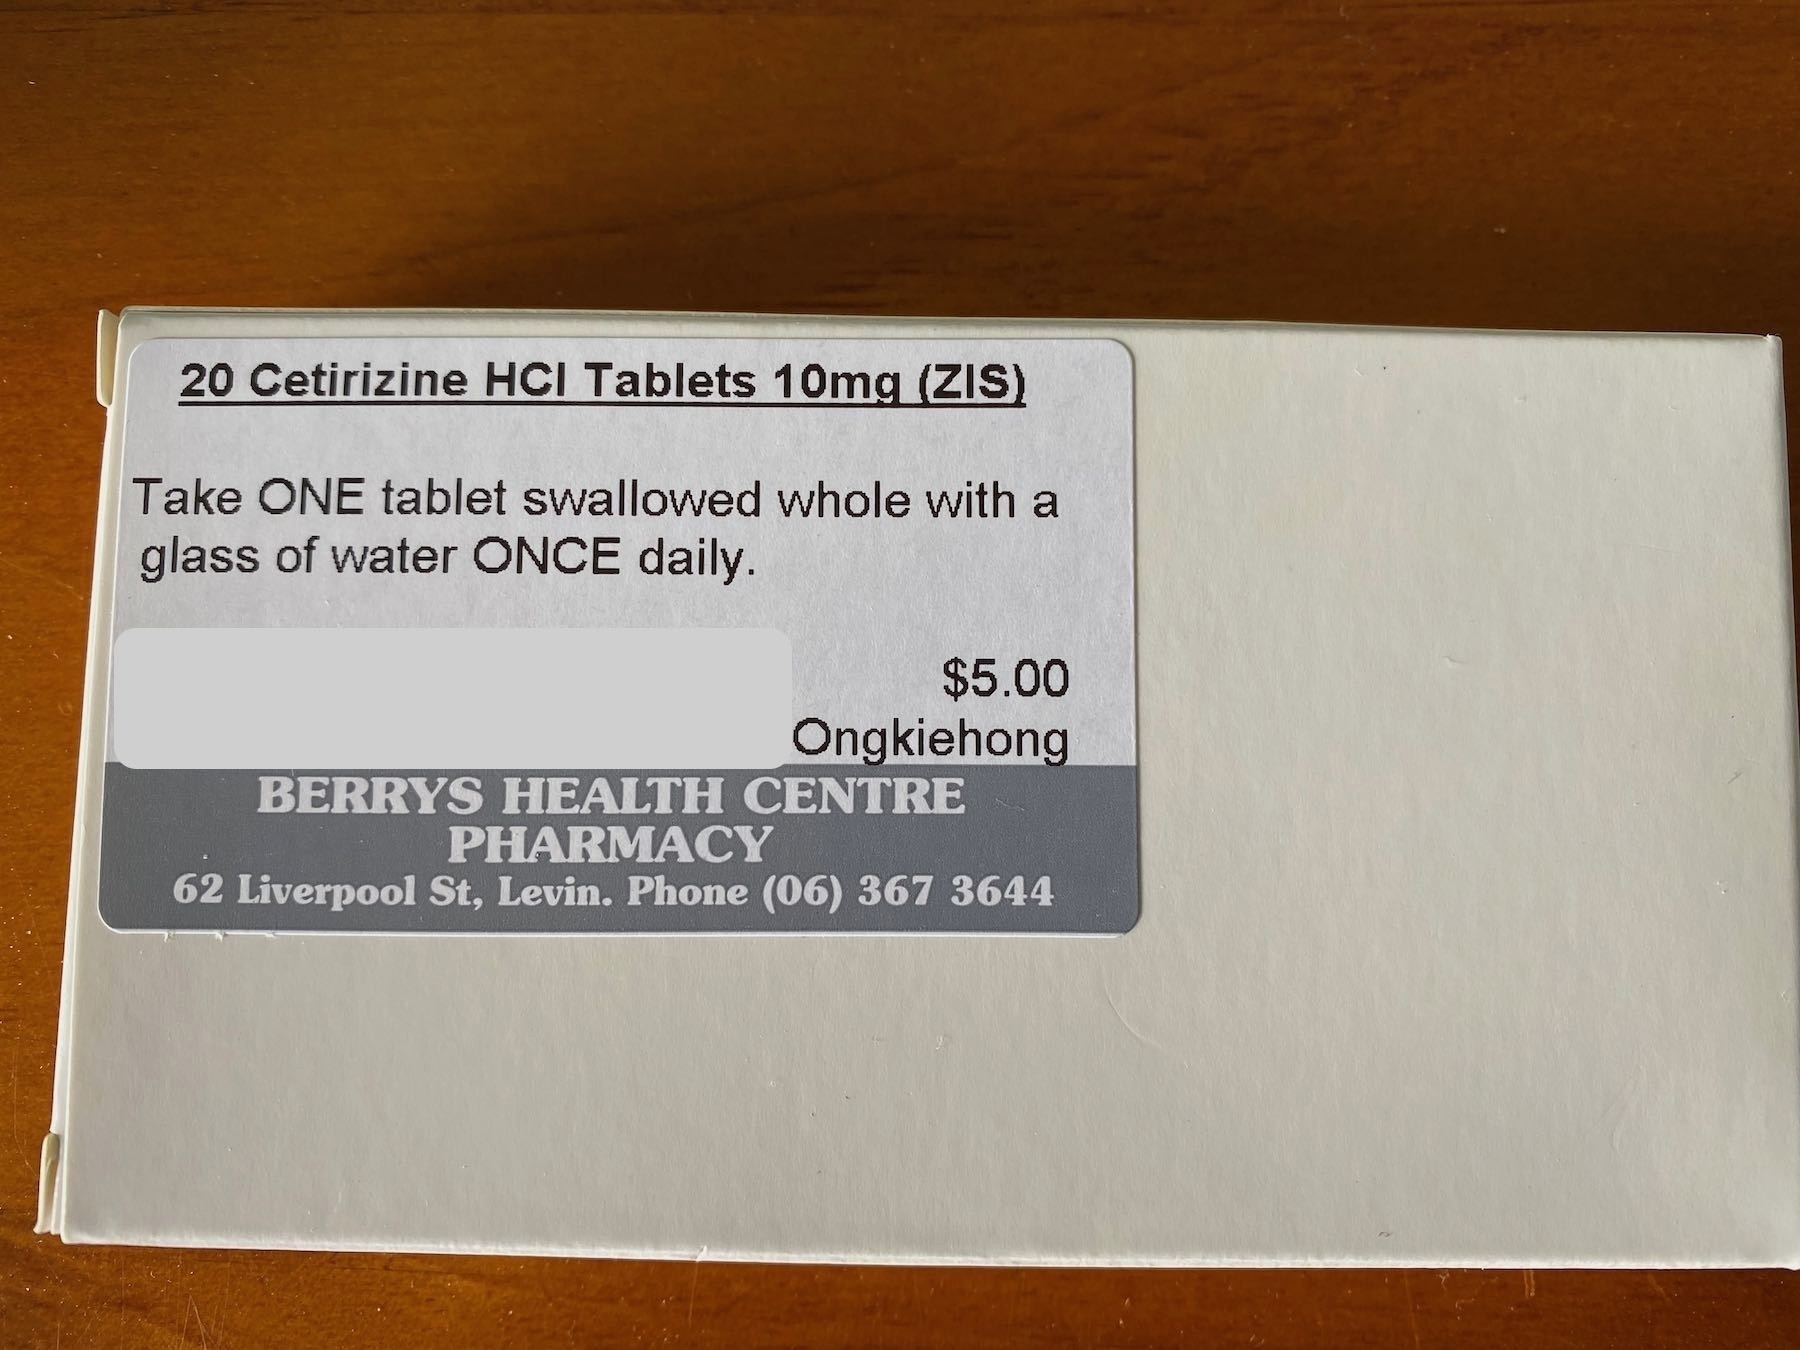 Pill packet for Cetirizine.